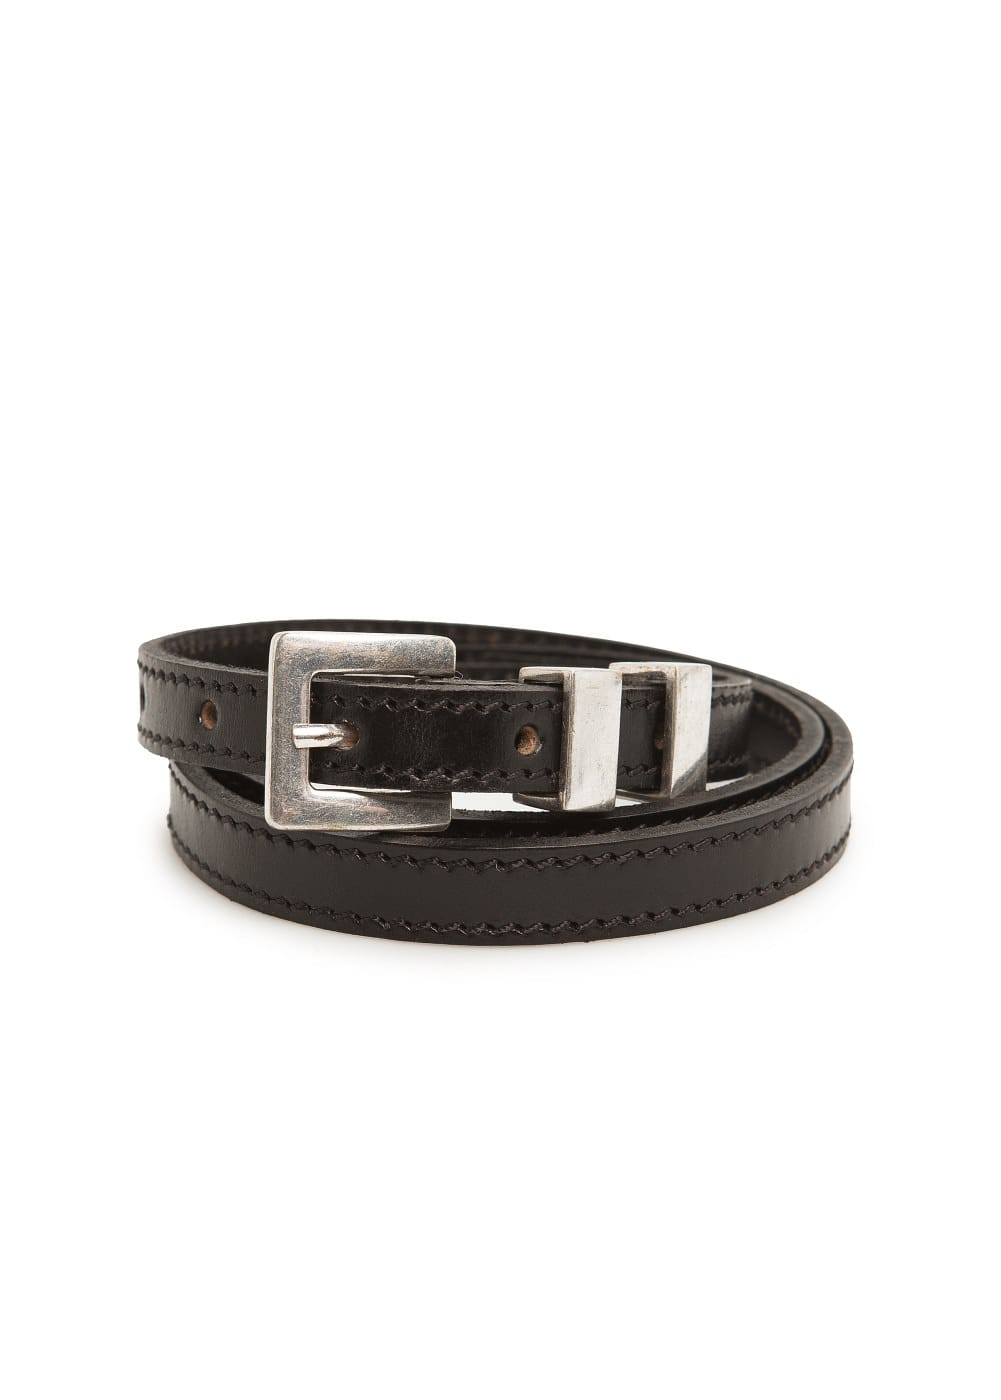 Leather skinny belt